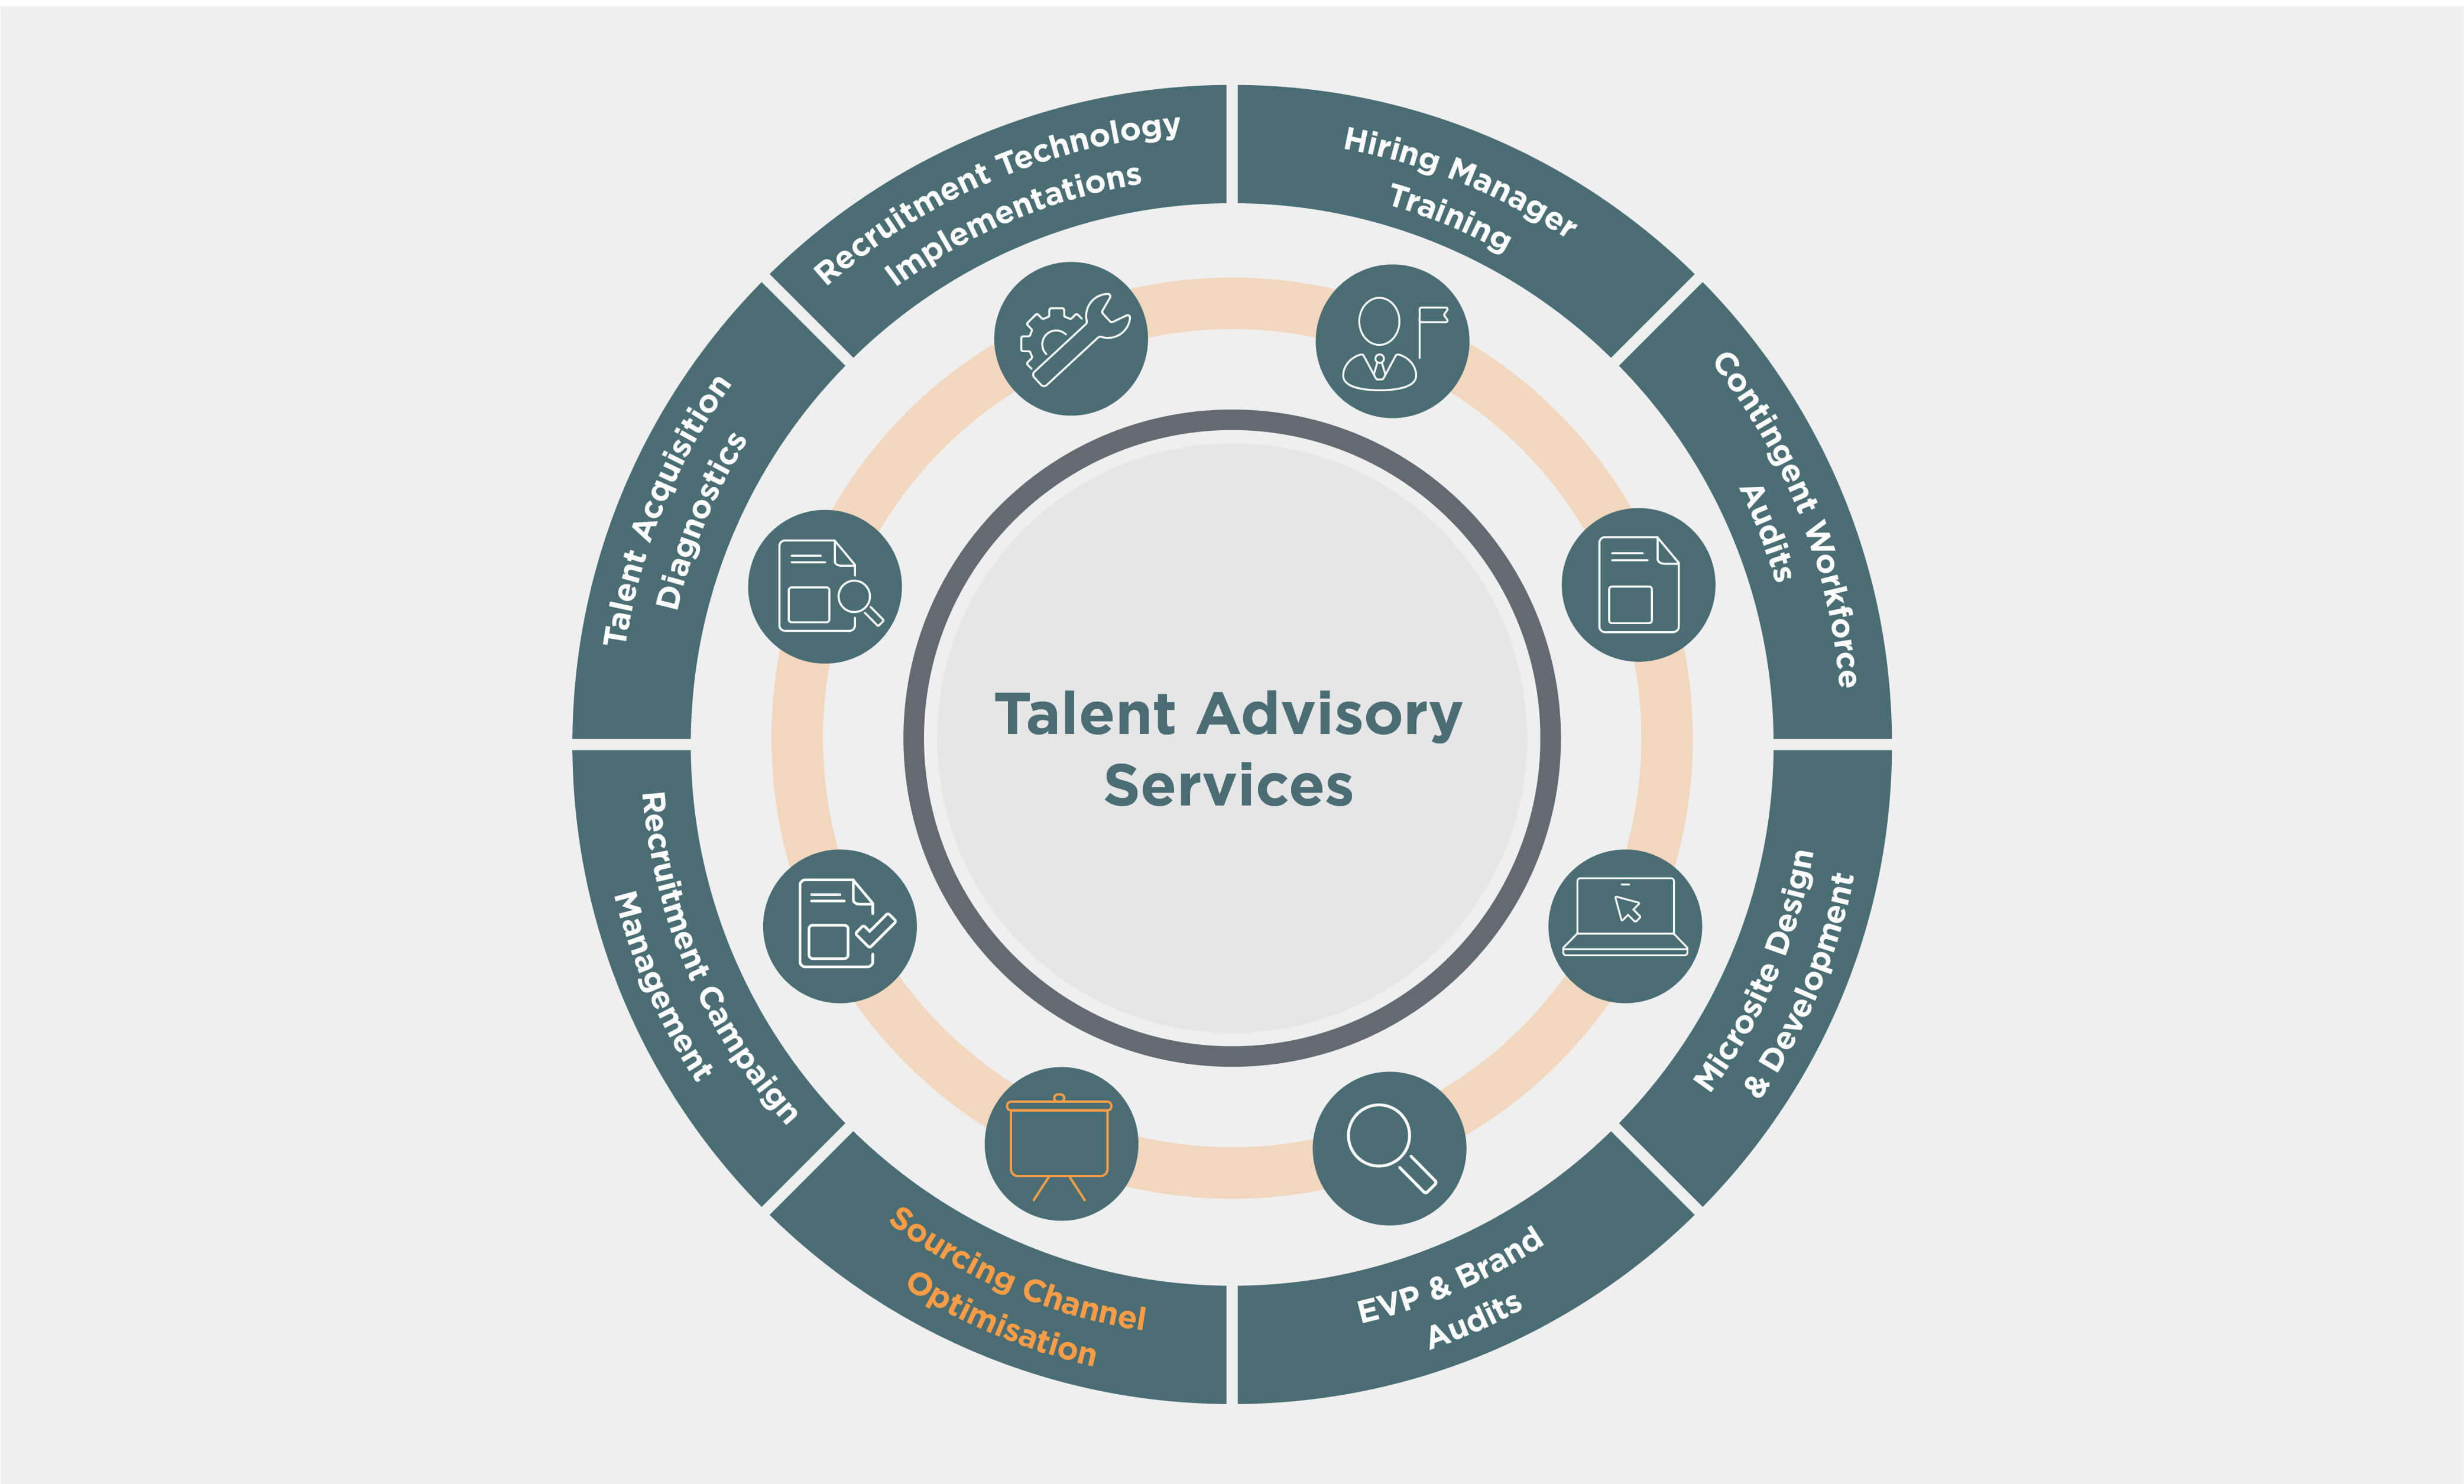 IQ Talent Solutions's Talent Advisory Services wheel with Sourcing Channel Optimisation service highlighted